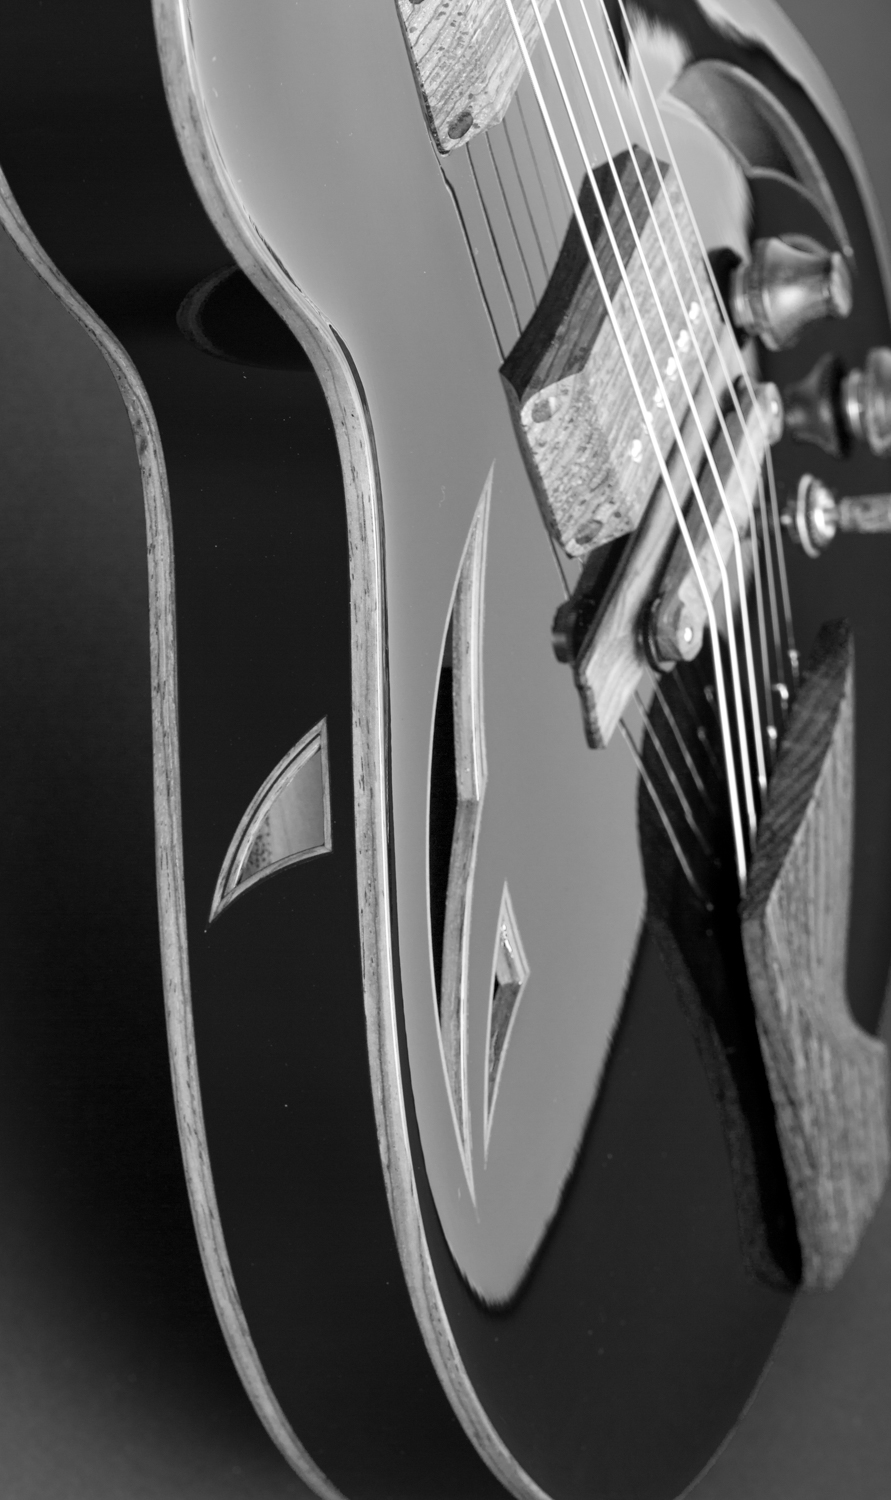 Product photography of guitar in studio